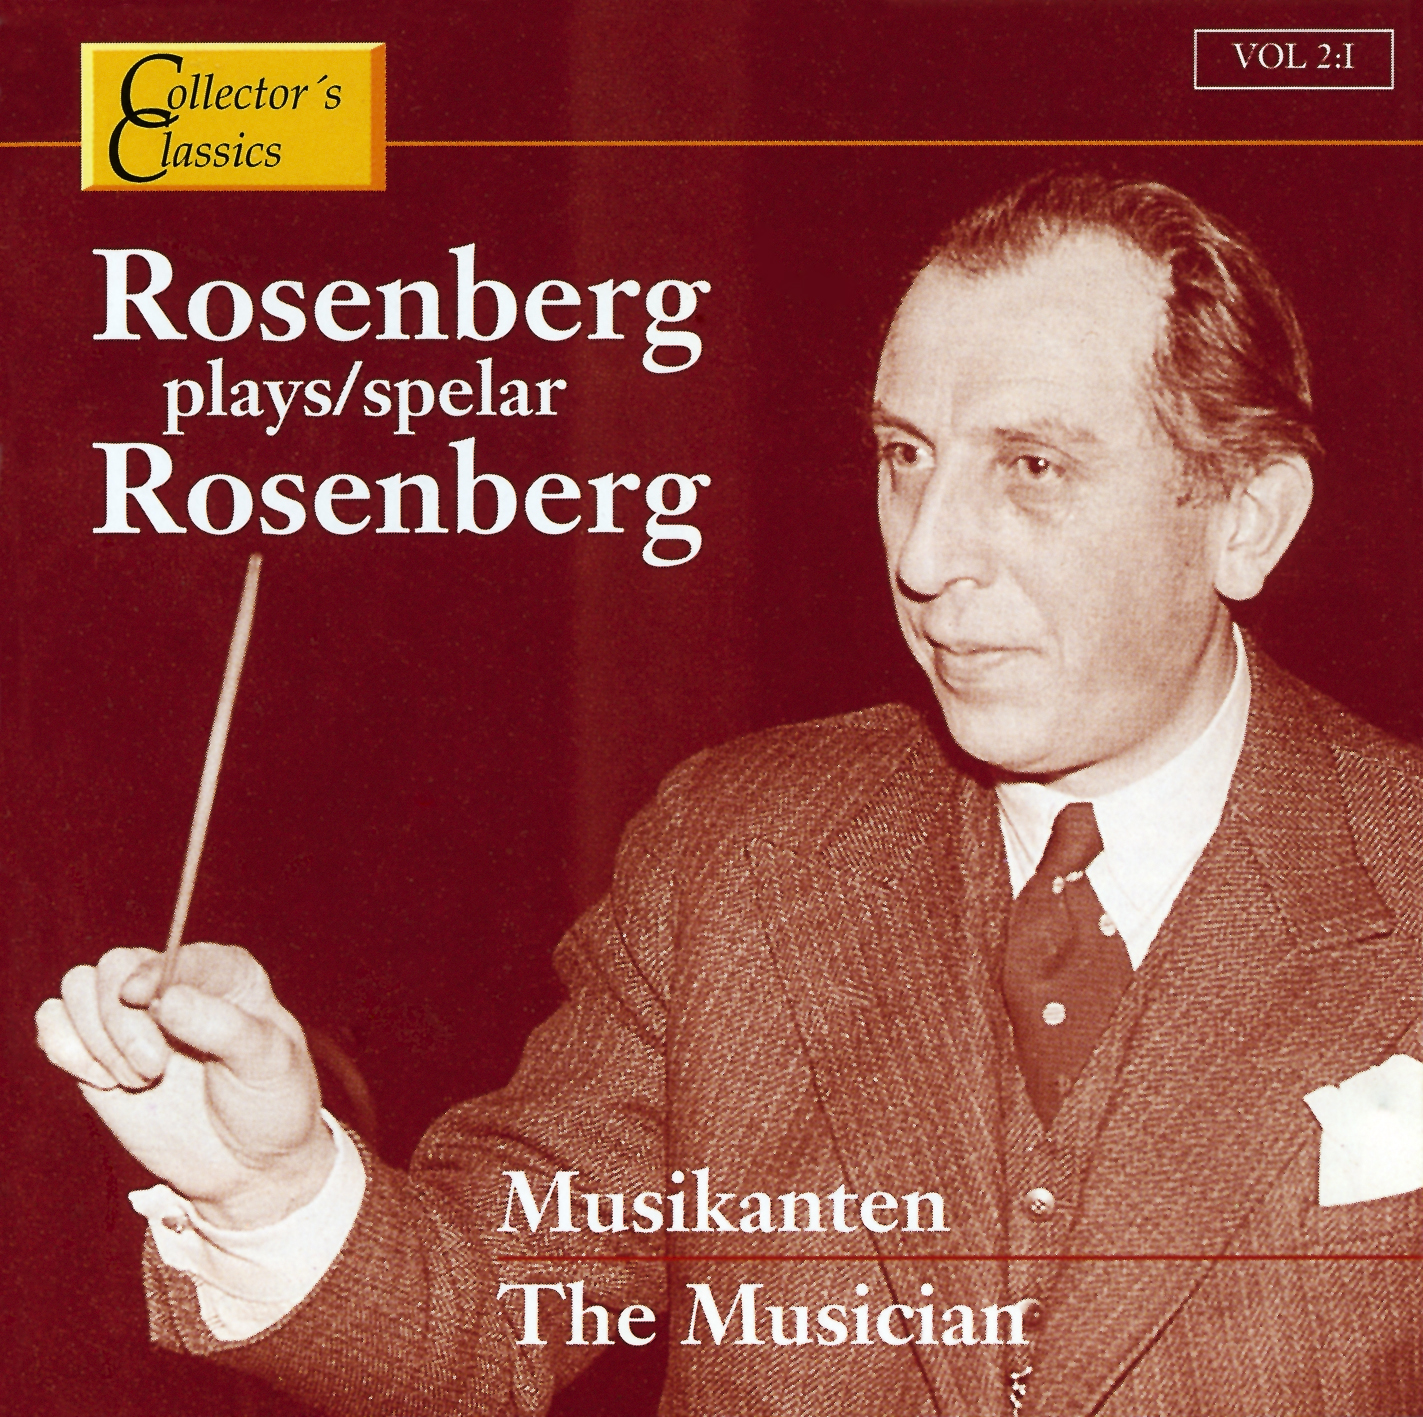 Rosenberg Vol 2:I The Musician CC